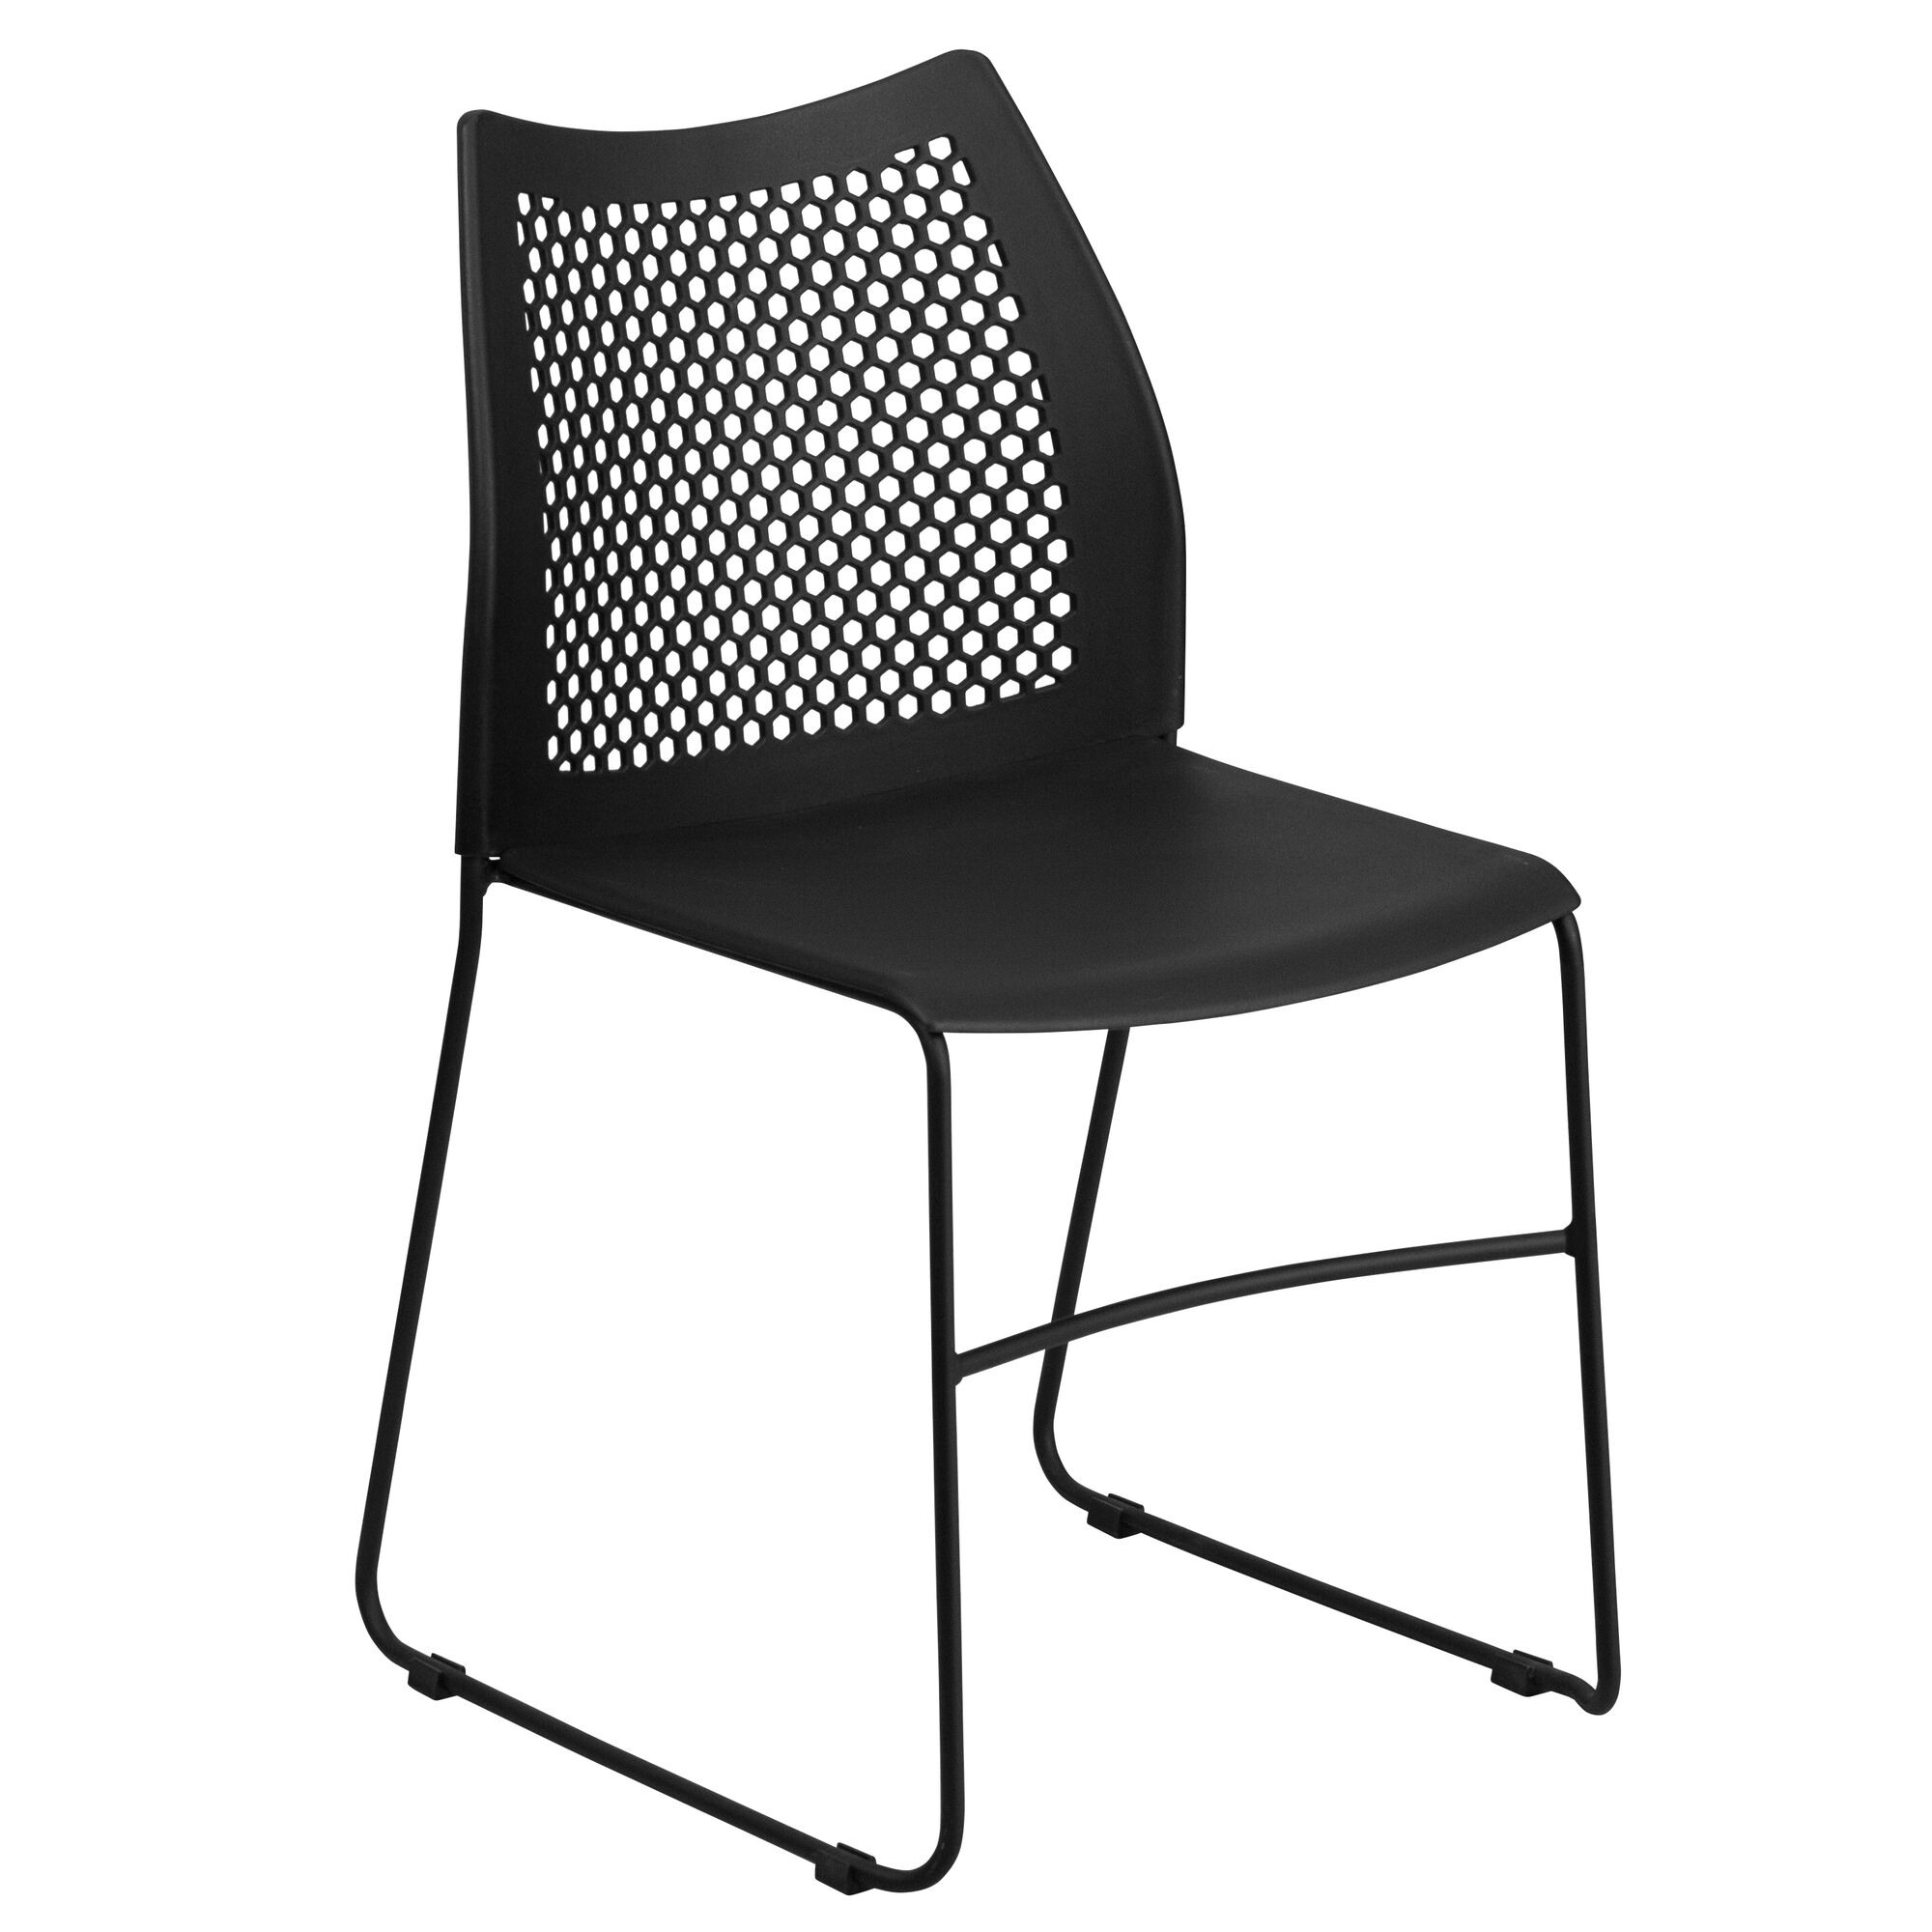 Fine Hercules Series 661 Lb Capacity Black Stack Chair With Air Vent Back And Black Powder Coated Sled Base Dailytribune Chair Design For Home Dailytribuneorg